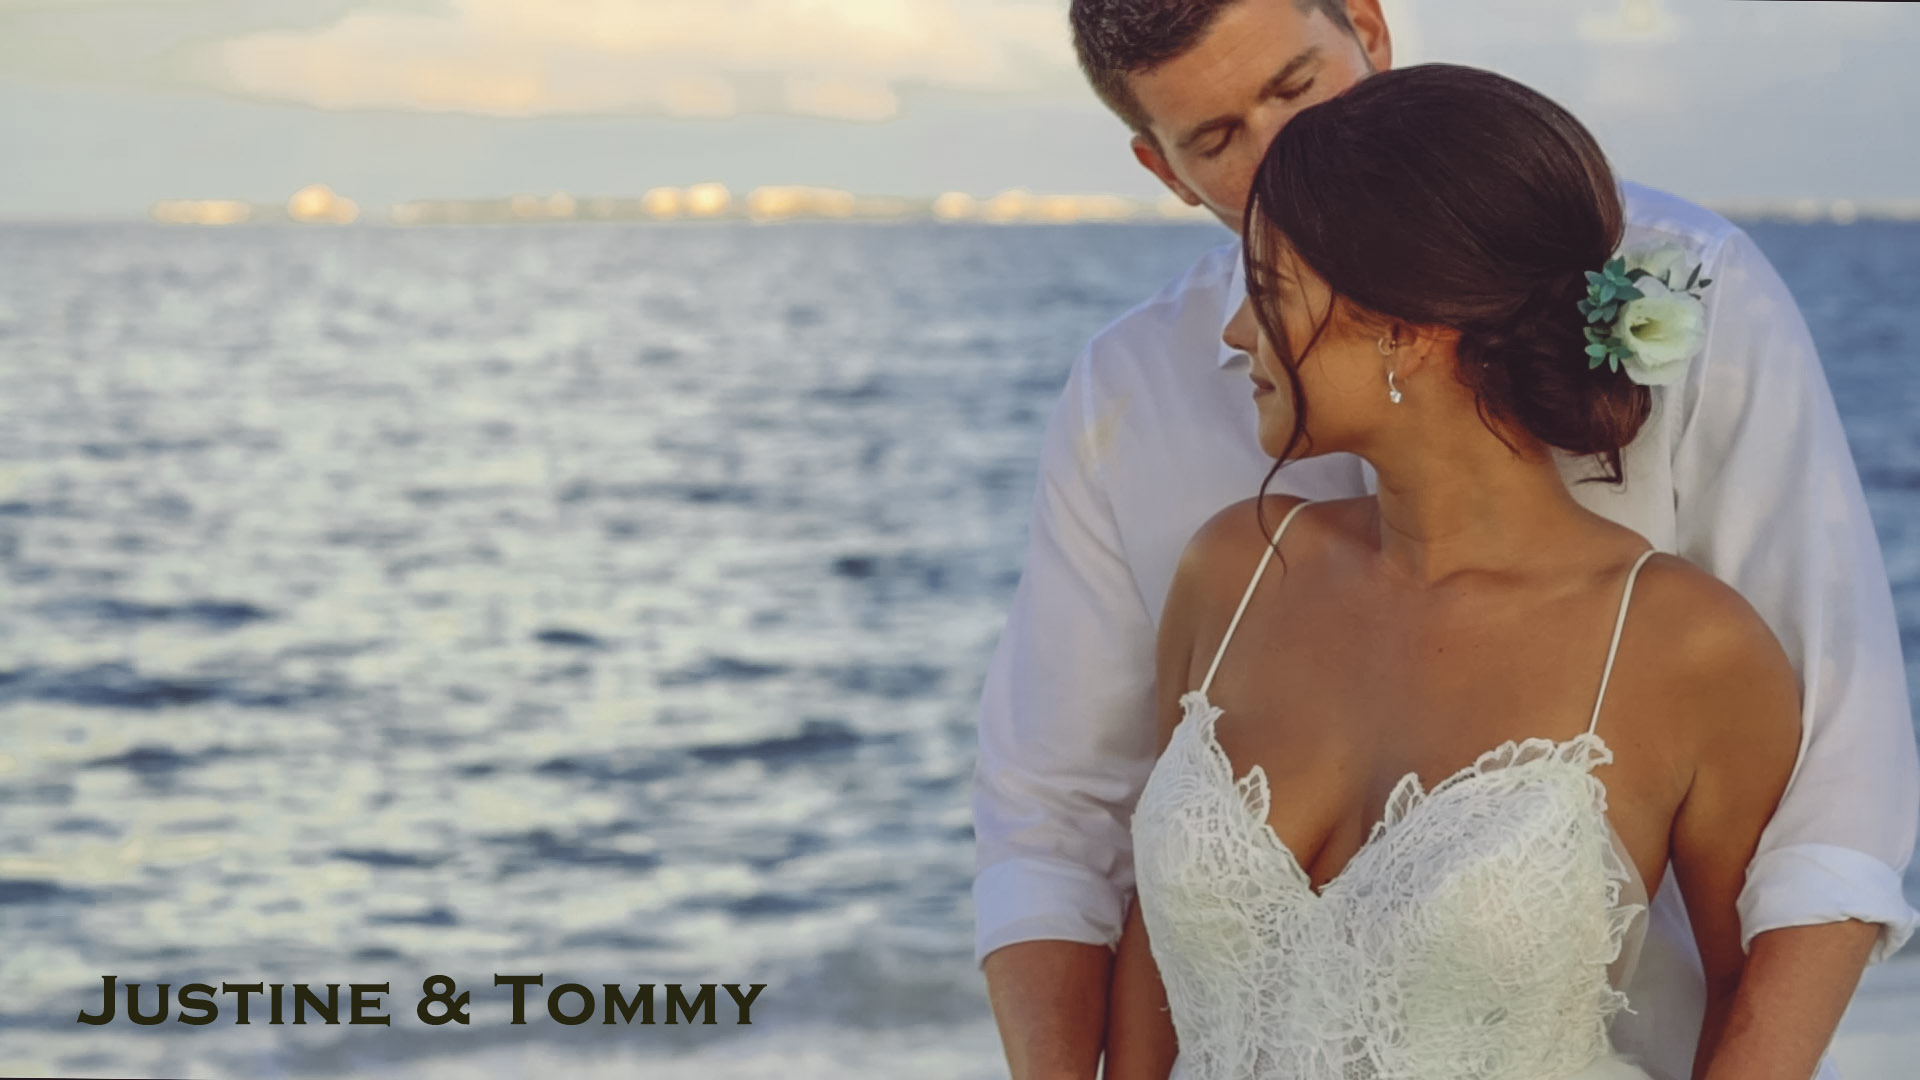 Destination Wedding at Secrets Playa Mujeres Resort - Justine & Tommy